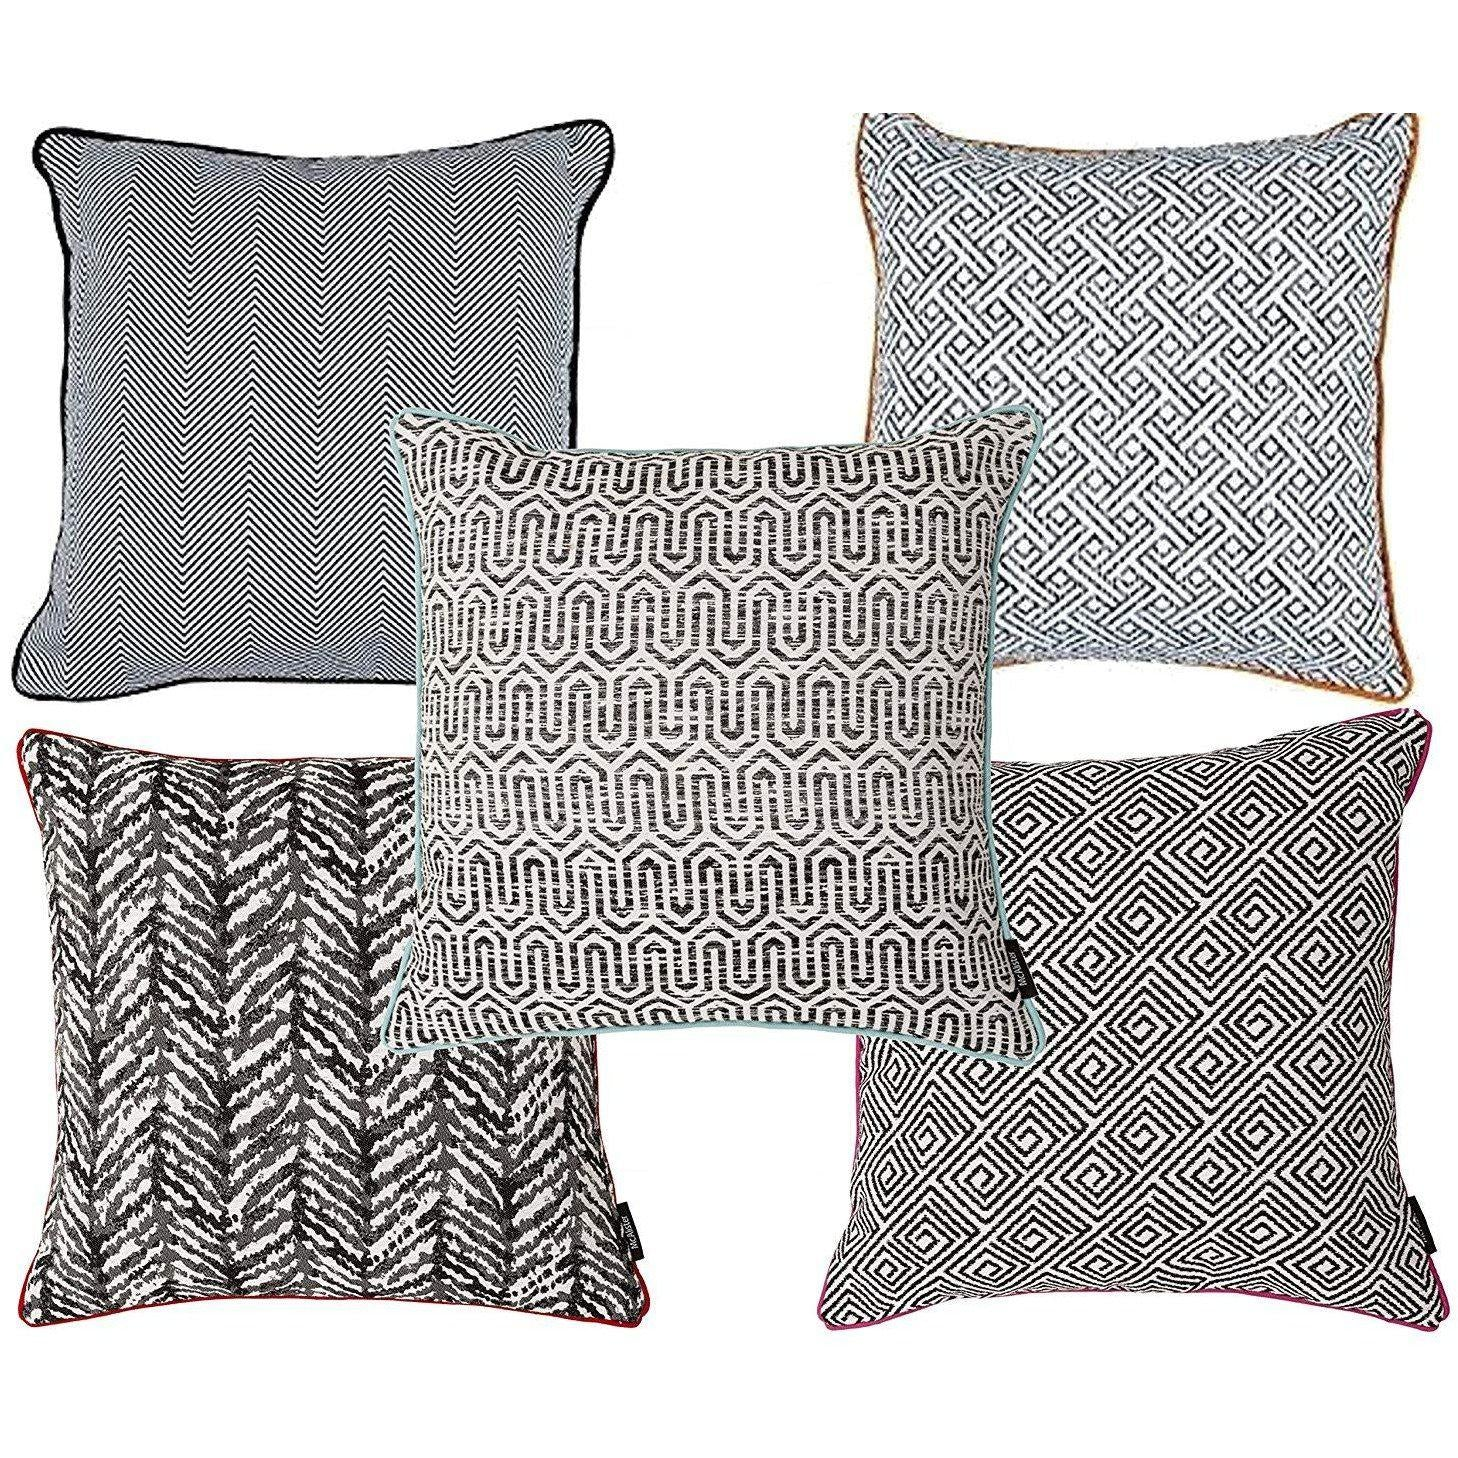 McAlister Textiles Aztec Geometric Black + White 43cm x 43cm Cushion Sets Cushions and Covers Set of 5 Cushion Covers